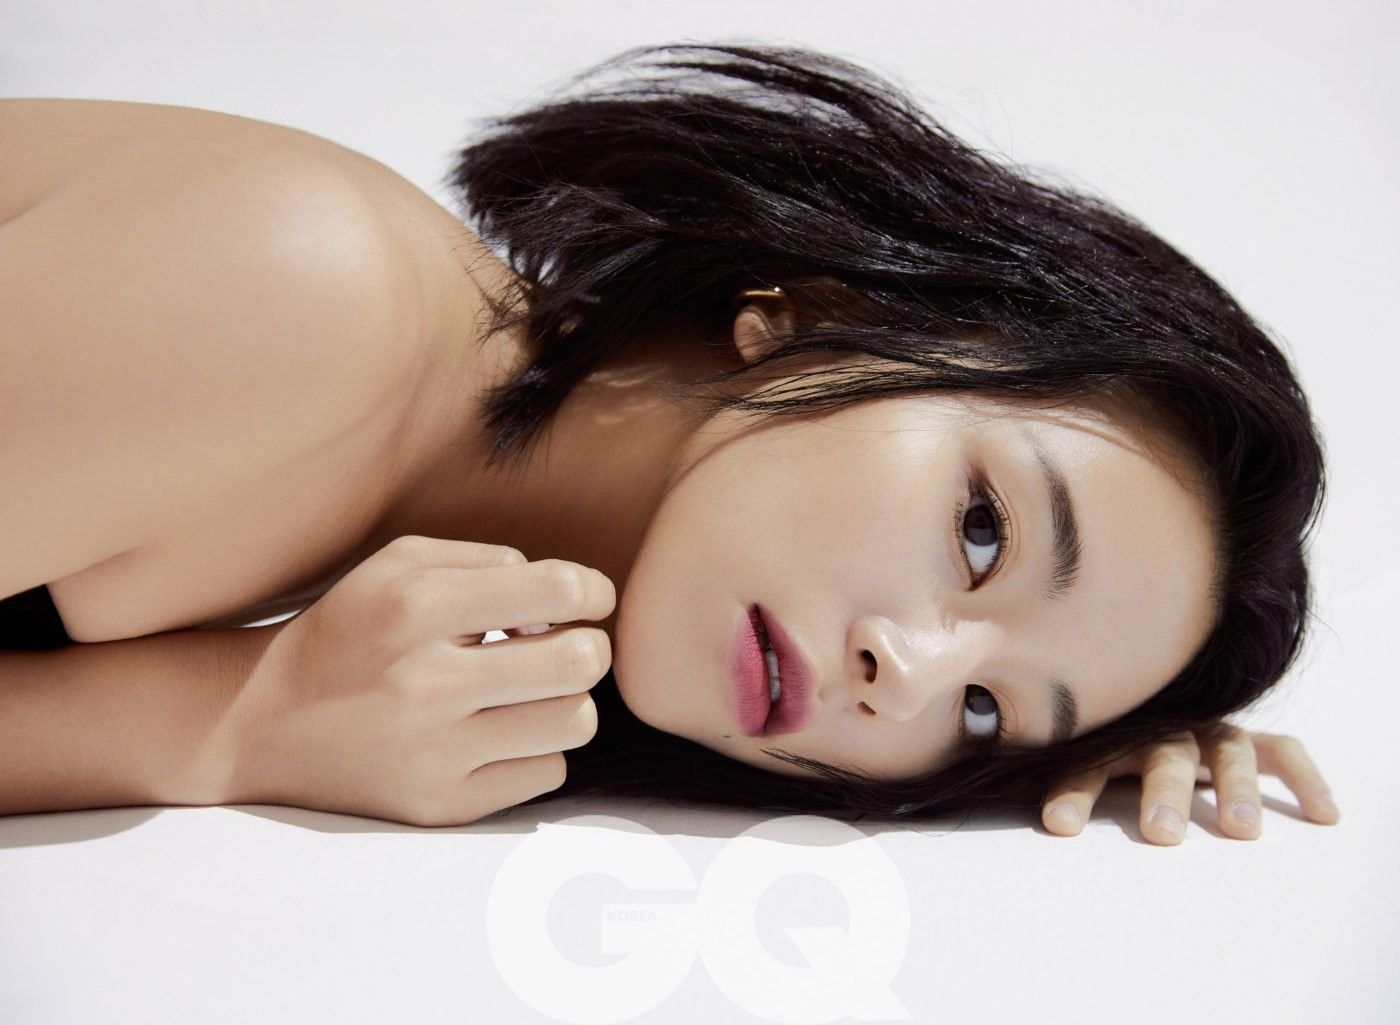 Pin by lei on Chaeyoung | Kpop girls, Gq, Twice photoshoot